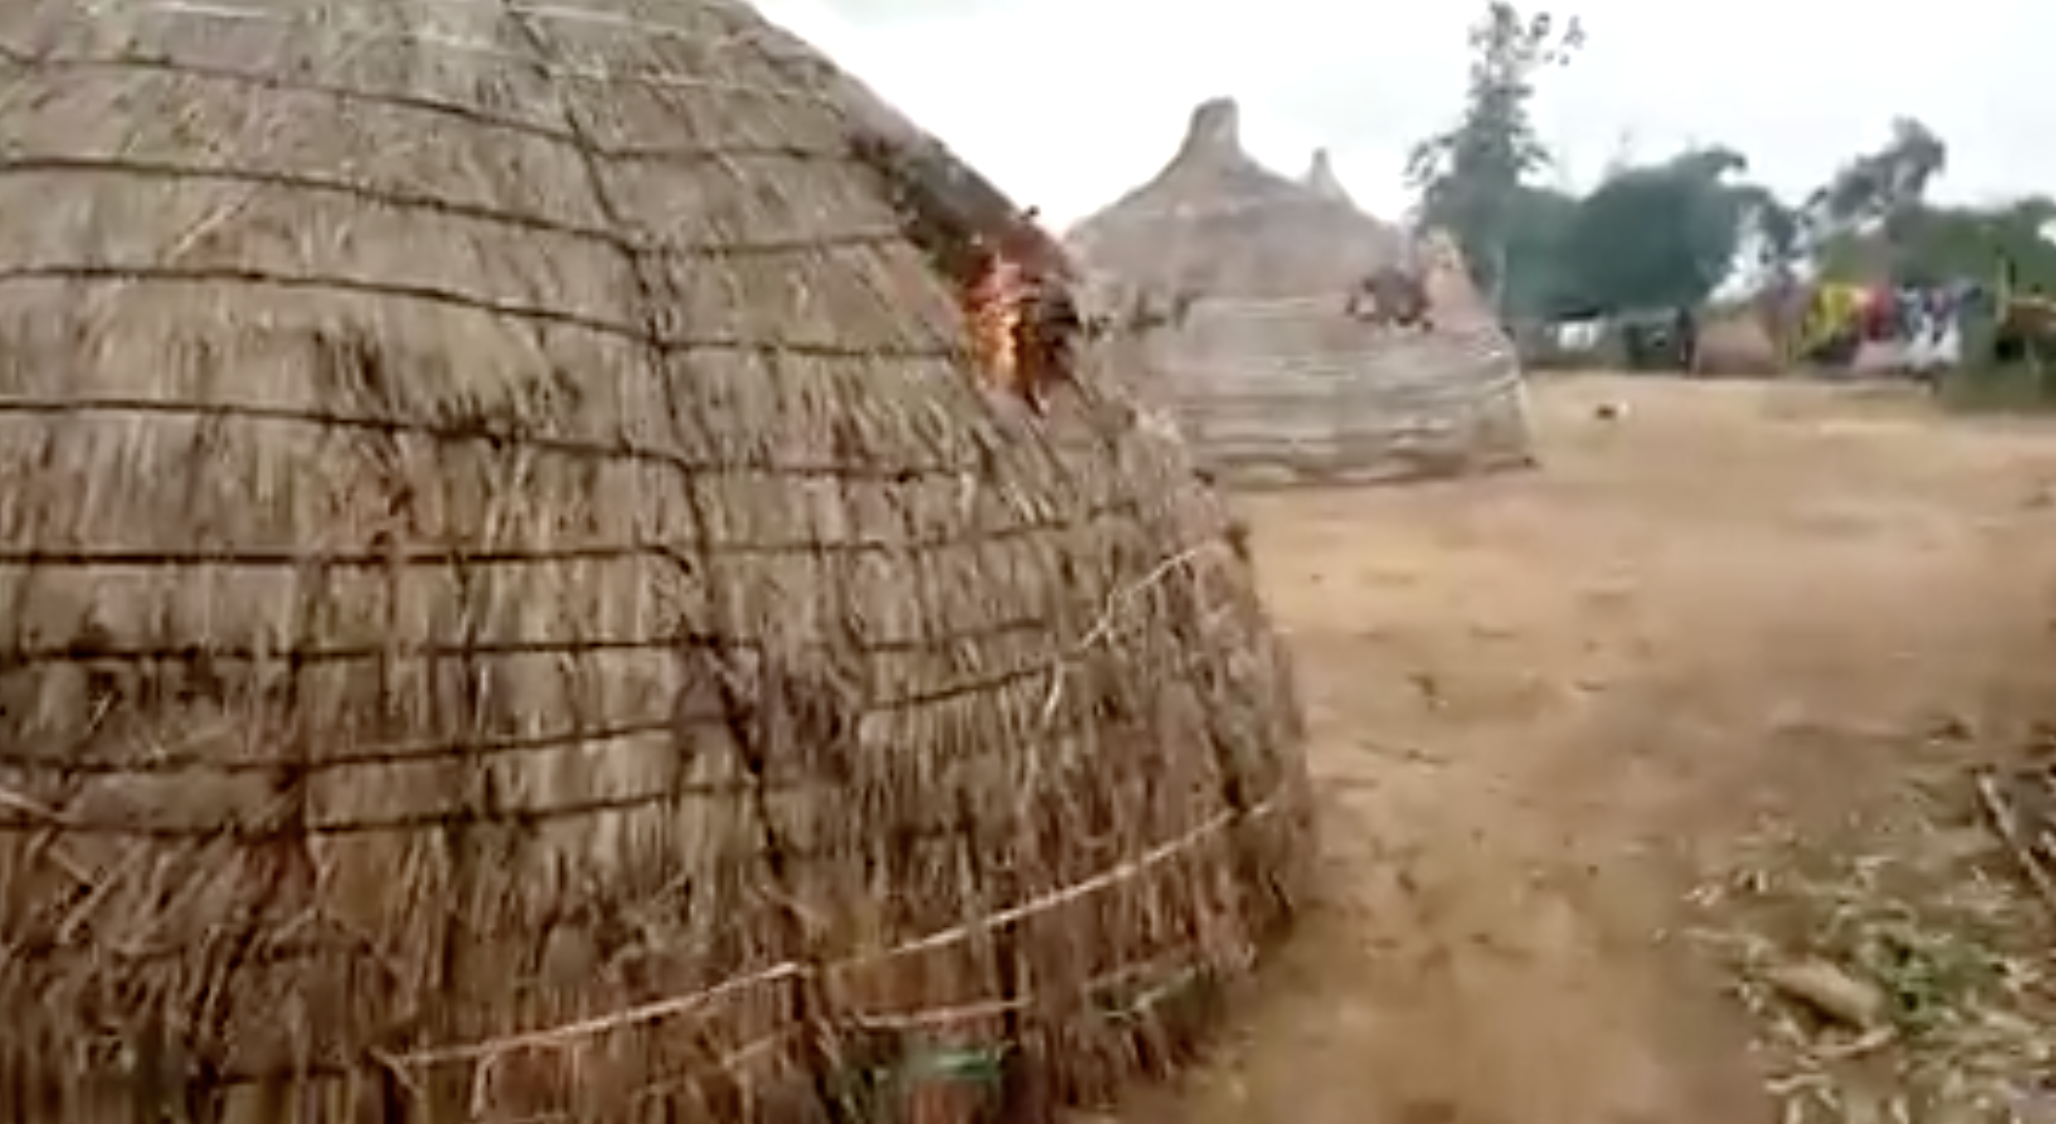 This video shows an attack that took place against Fulani herdsmen in Southeast Nigeria in February, 2021.